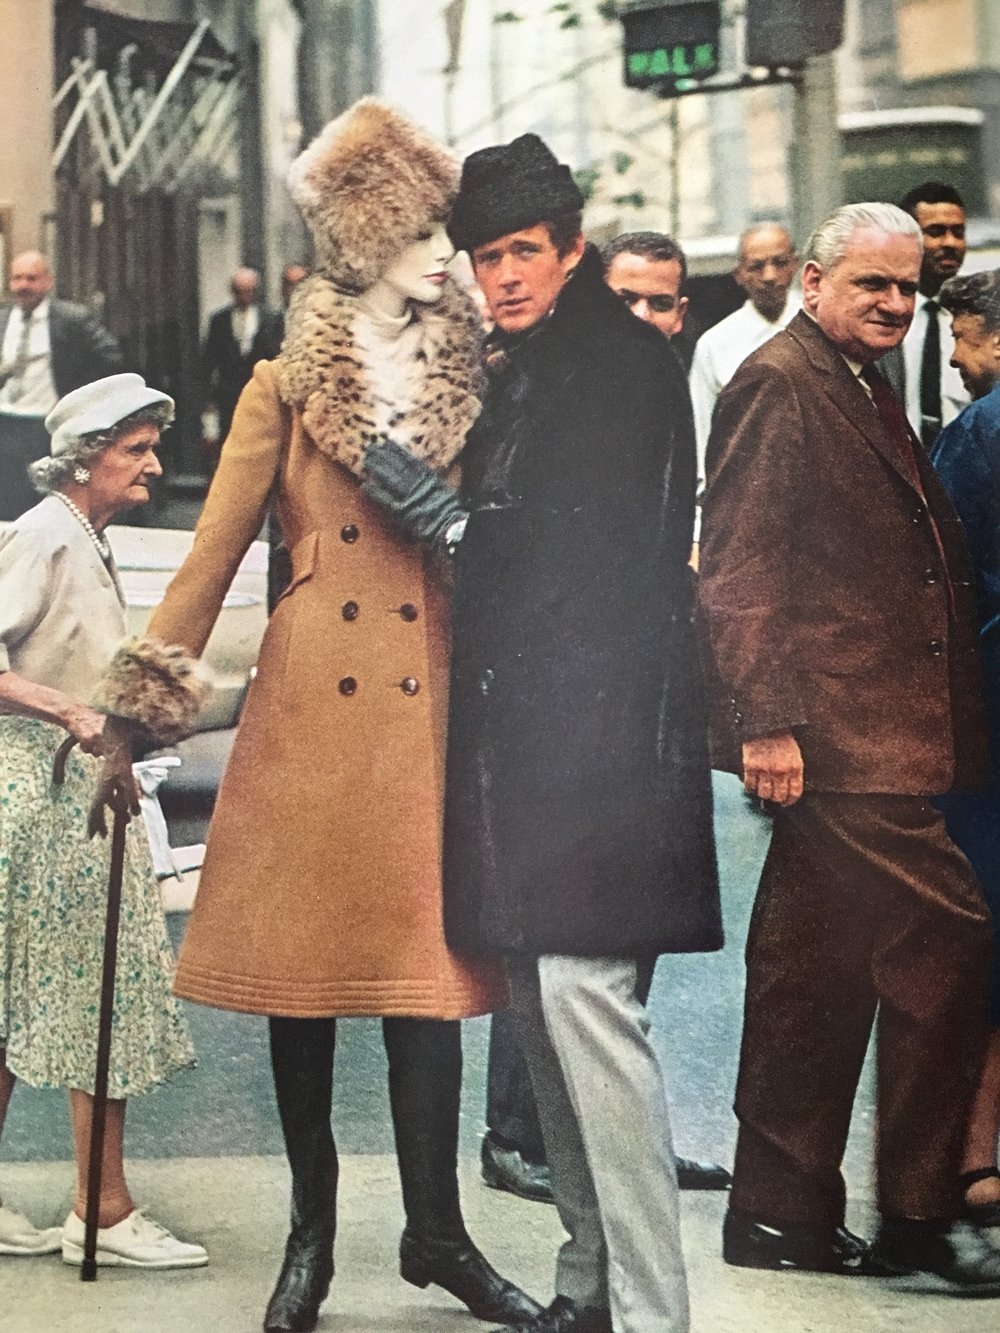 Russian dressing. The doll wears a midi-length camel coat, lynx-trimmed. The guy, a brow seal coat and diplomat hat.